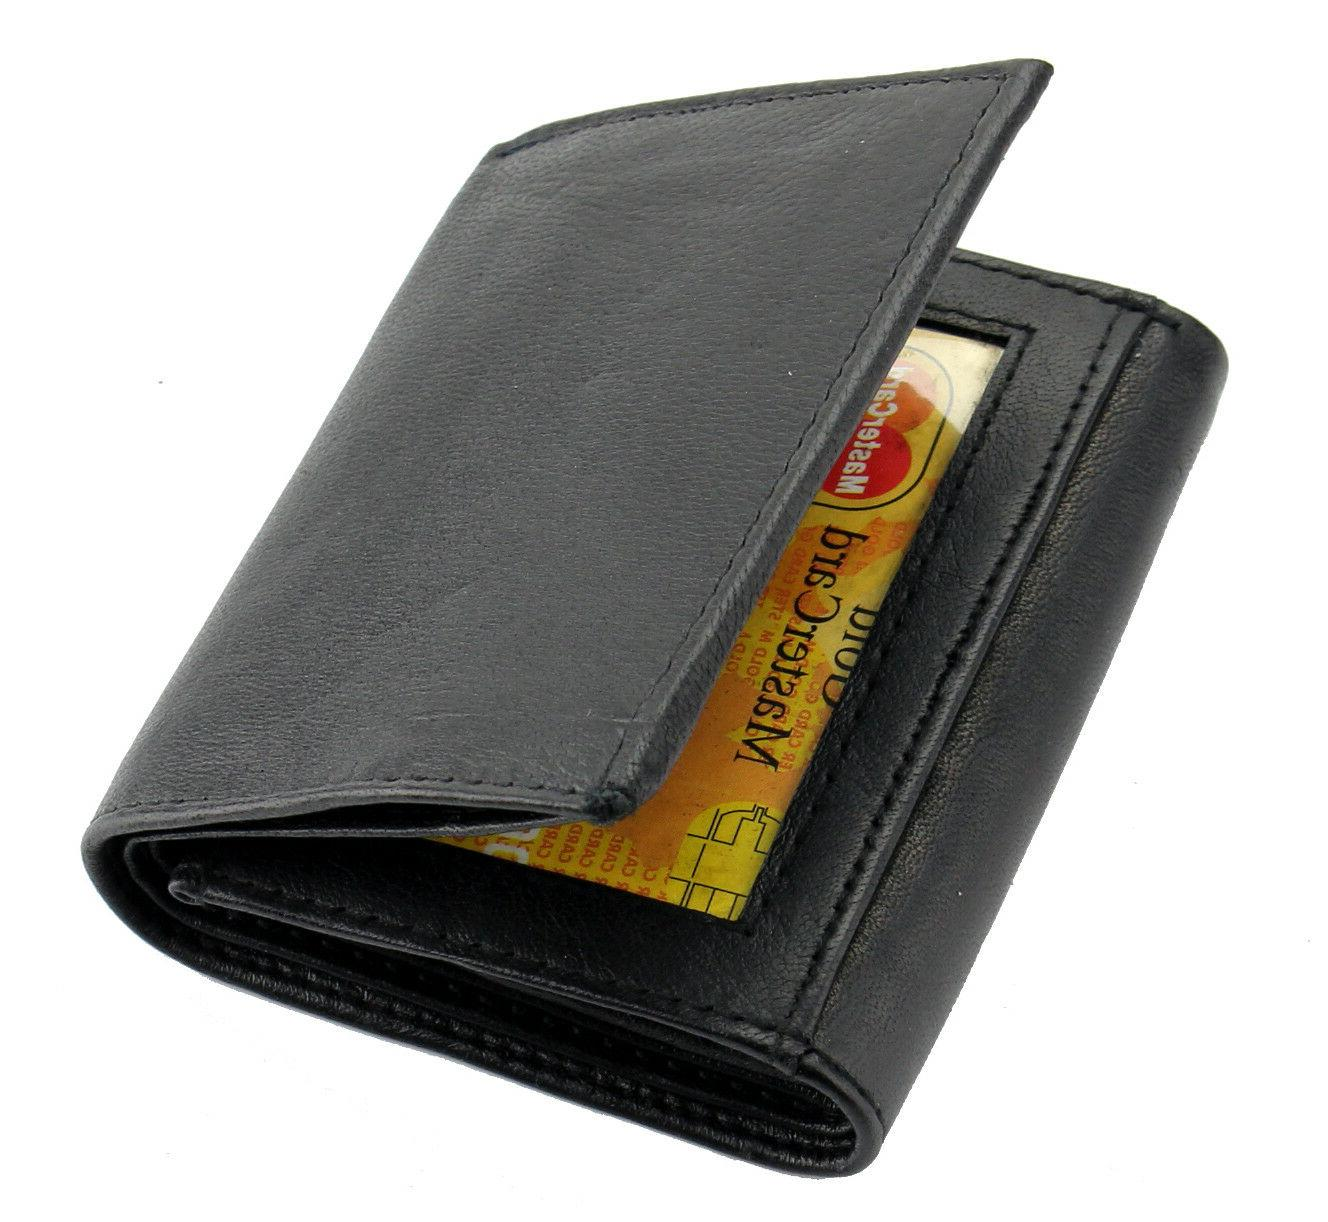 New Black Genuine Leather Trifold Wallet Window Credit Holder